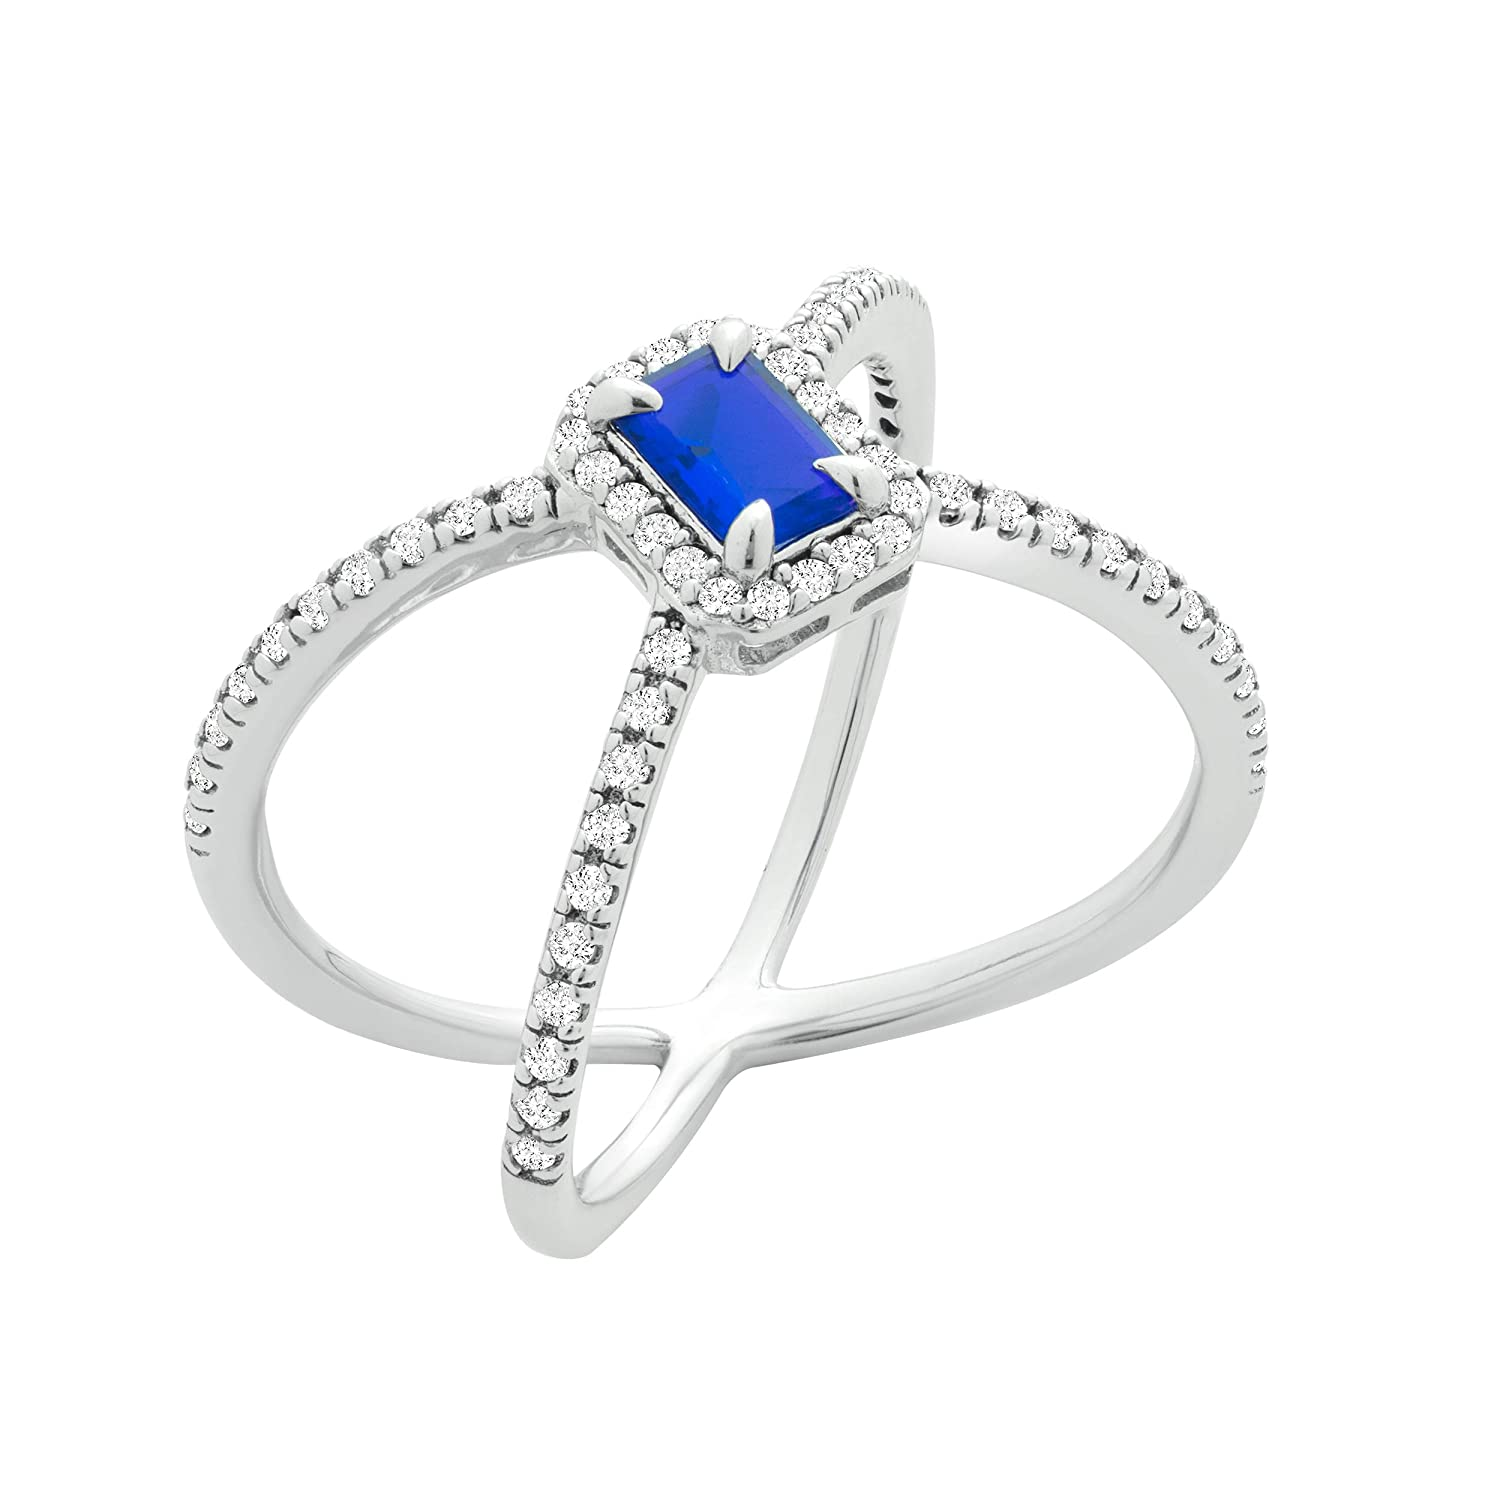 Chic Jewels RG2022-9 Sterling Silver Cubic Zirconia X Criss Cross Ring With Blue Emerald Cut Stone